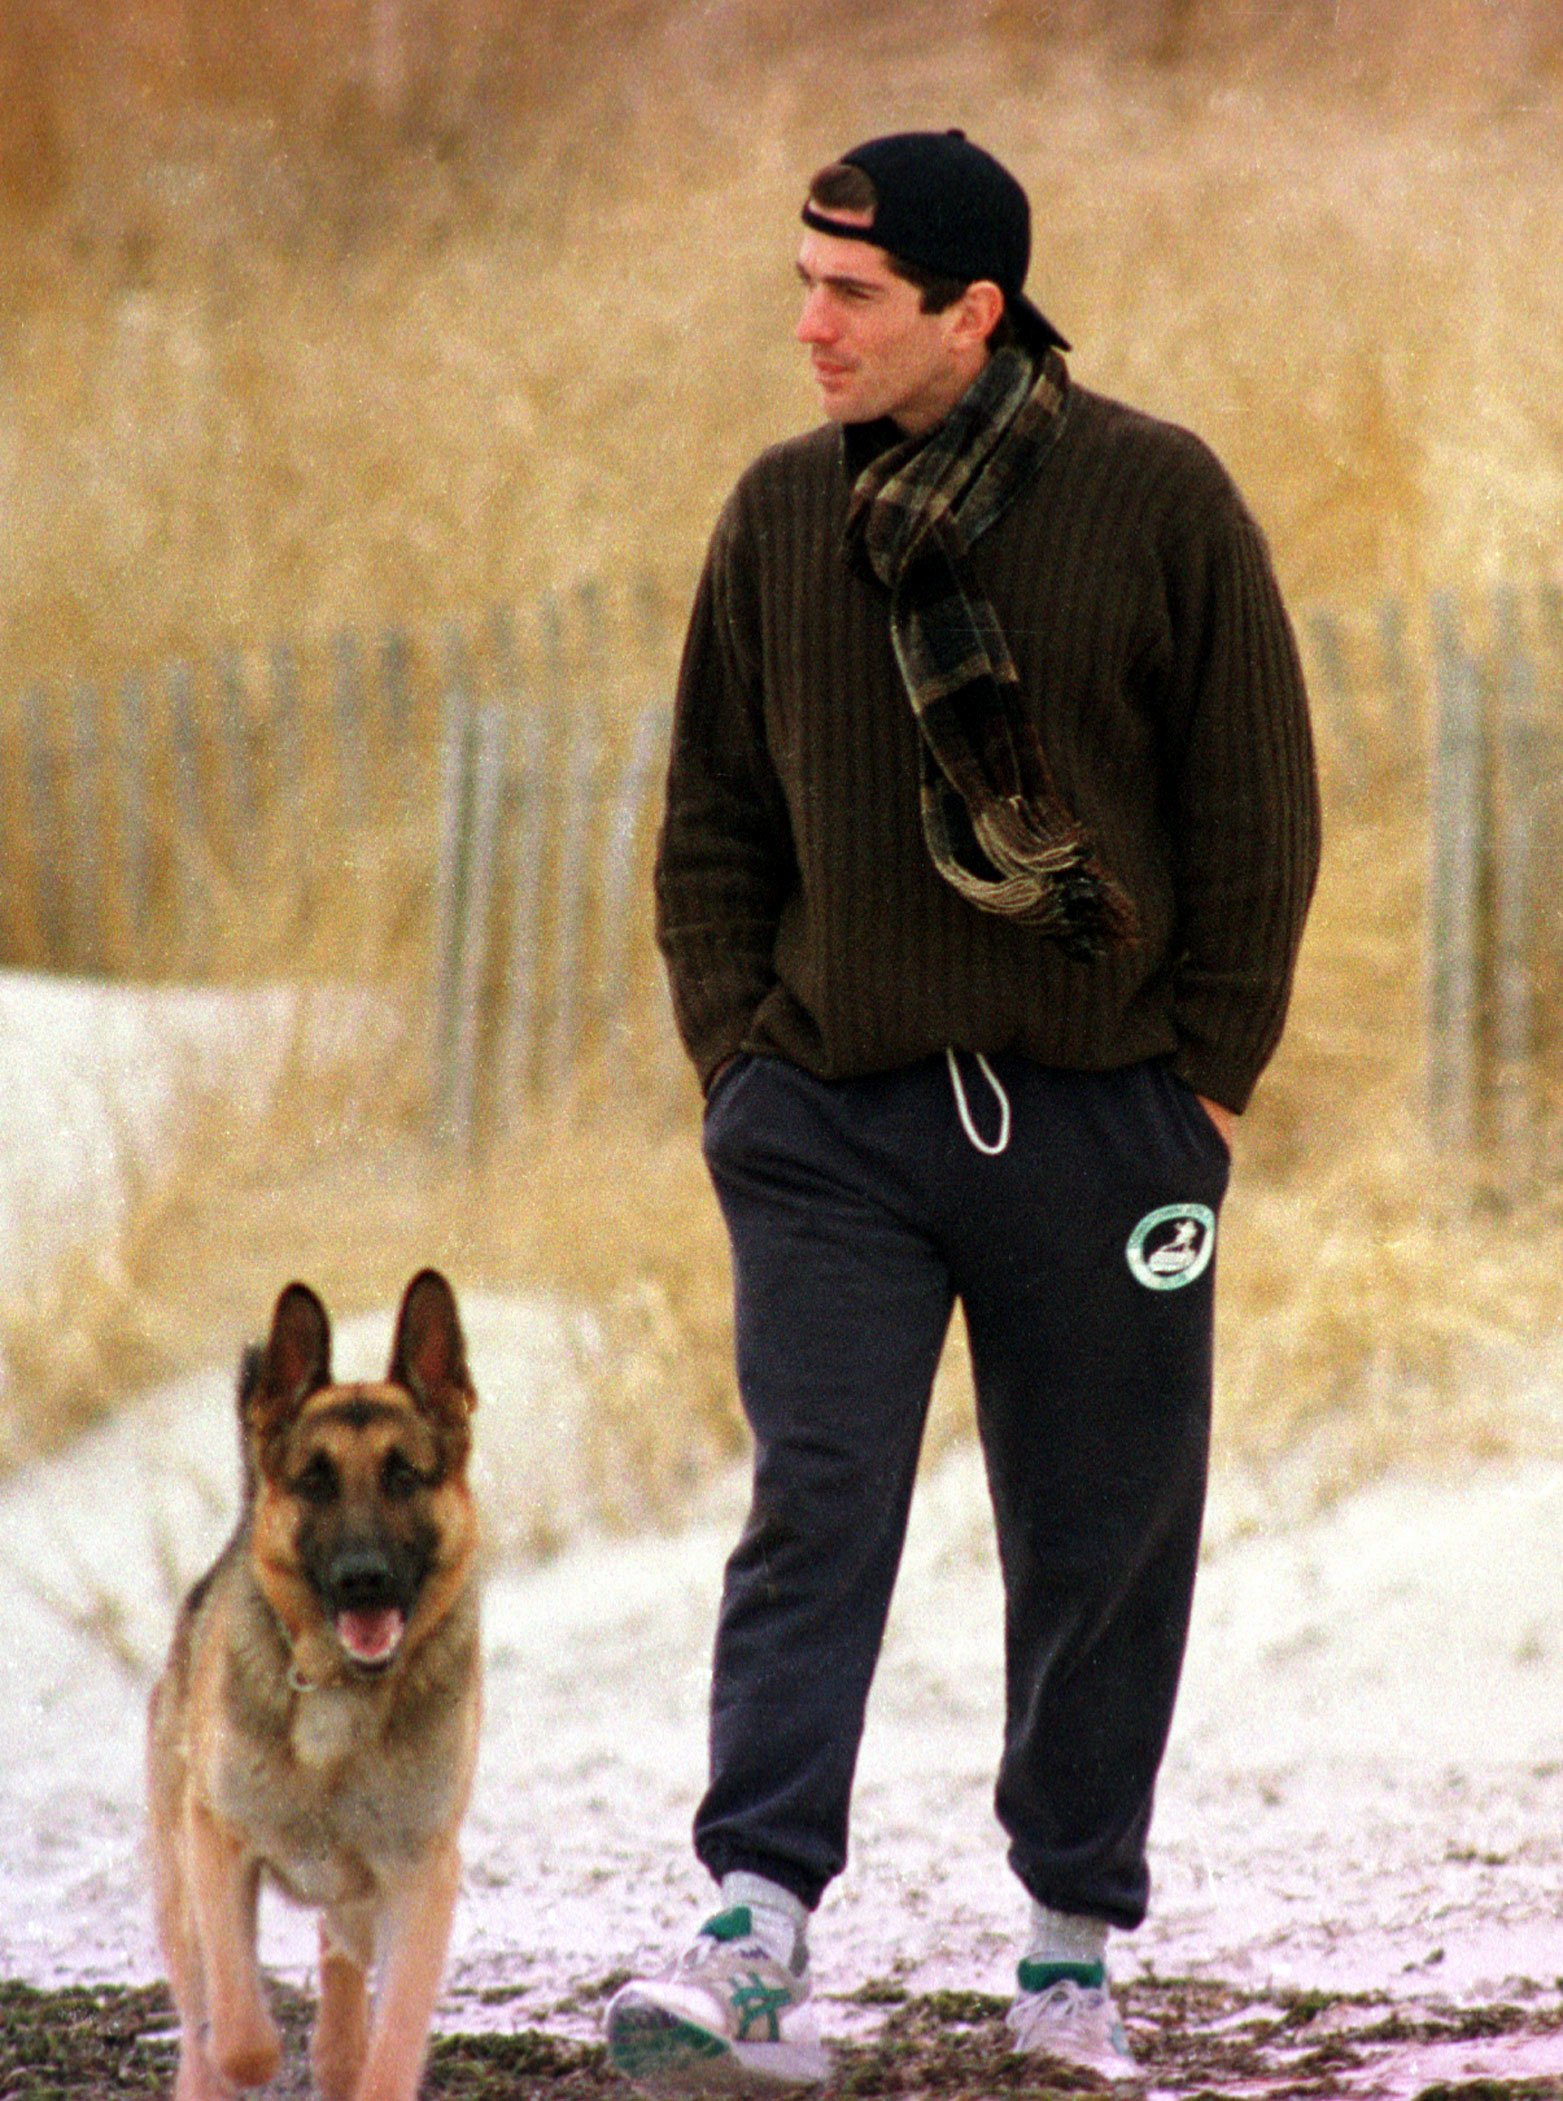 John F. Kennedy Jr. looks out to sea while walking with his dog along the beach in Hyannis Port, Massachusetts, January 24, 1995 | Photo: Getty Images